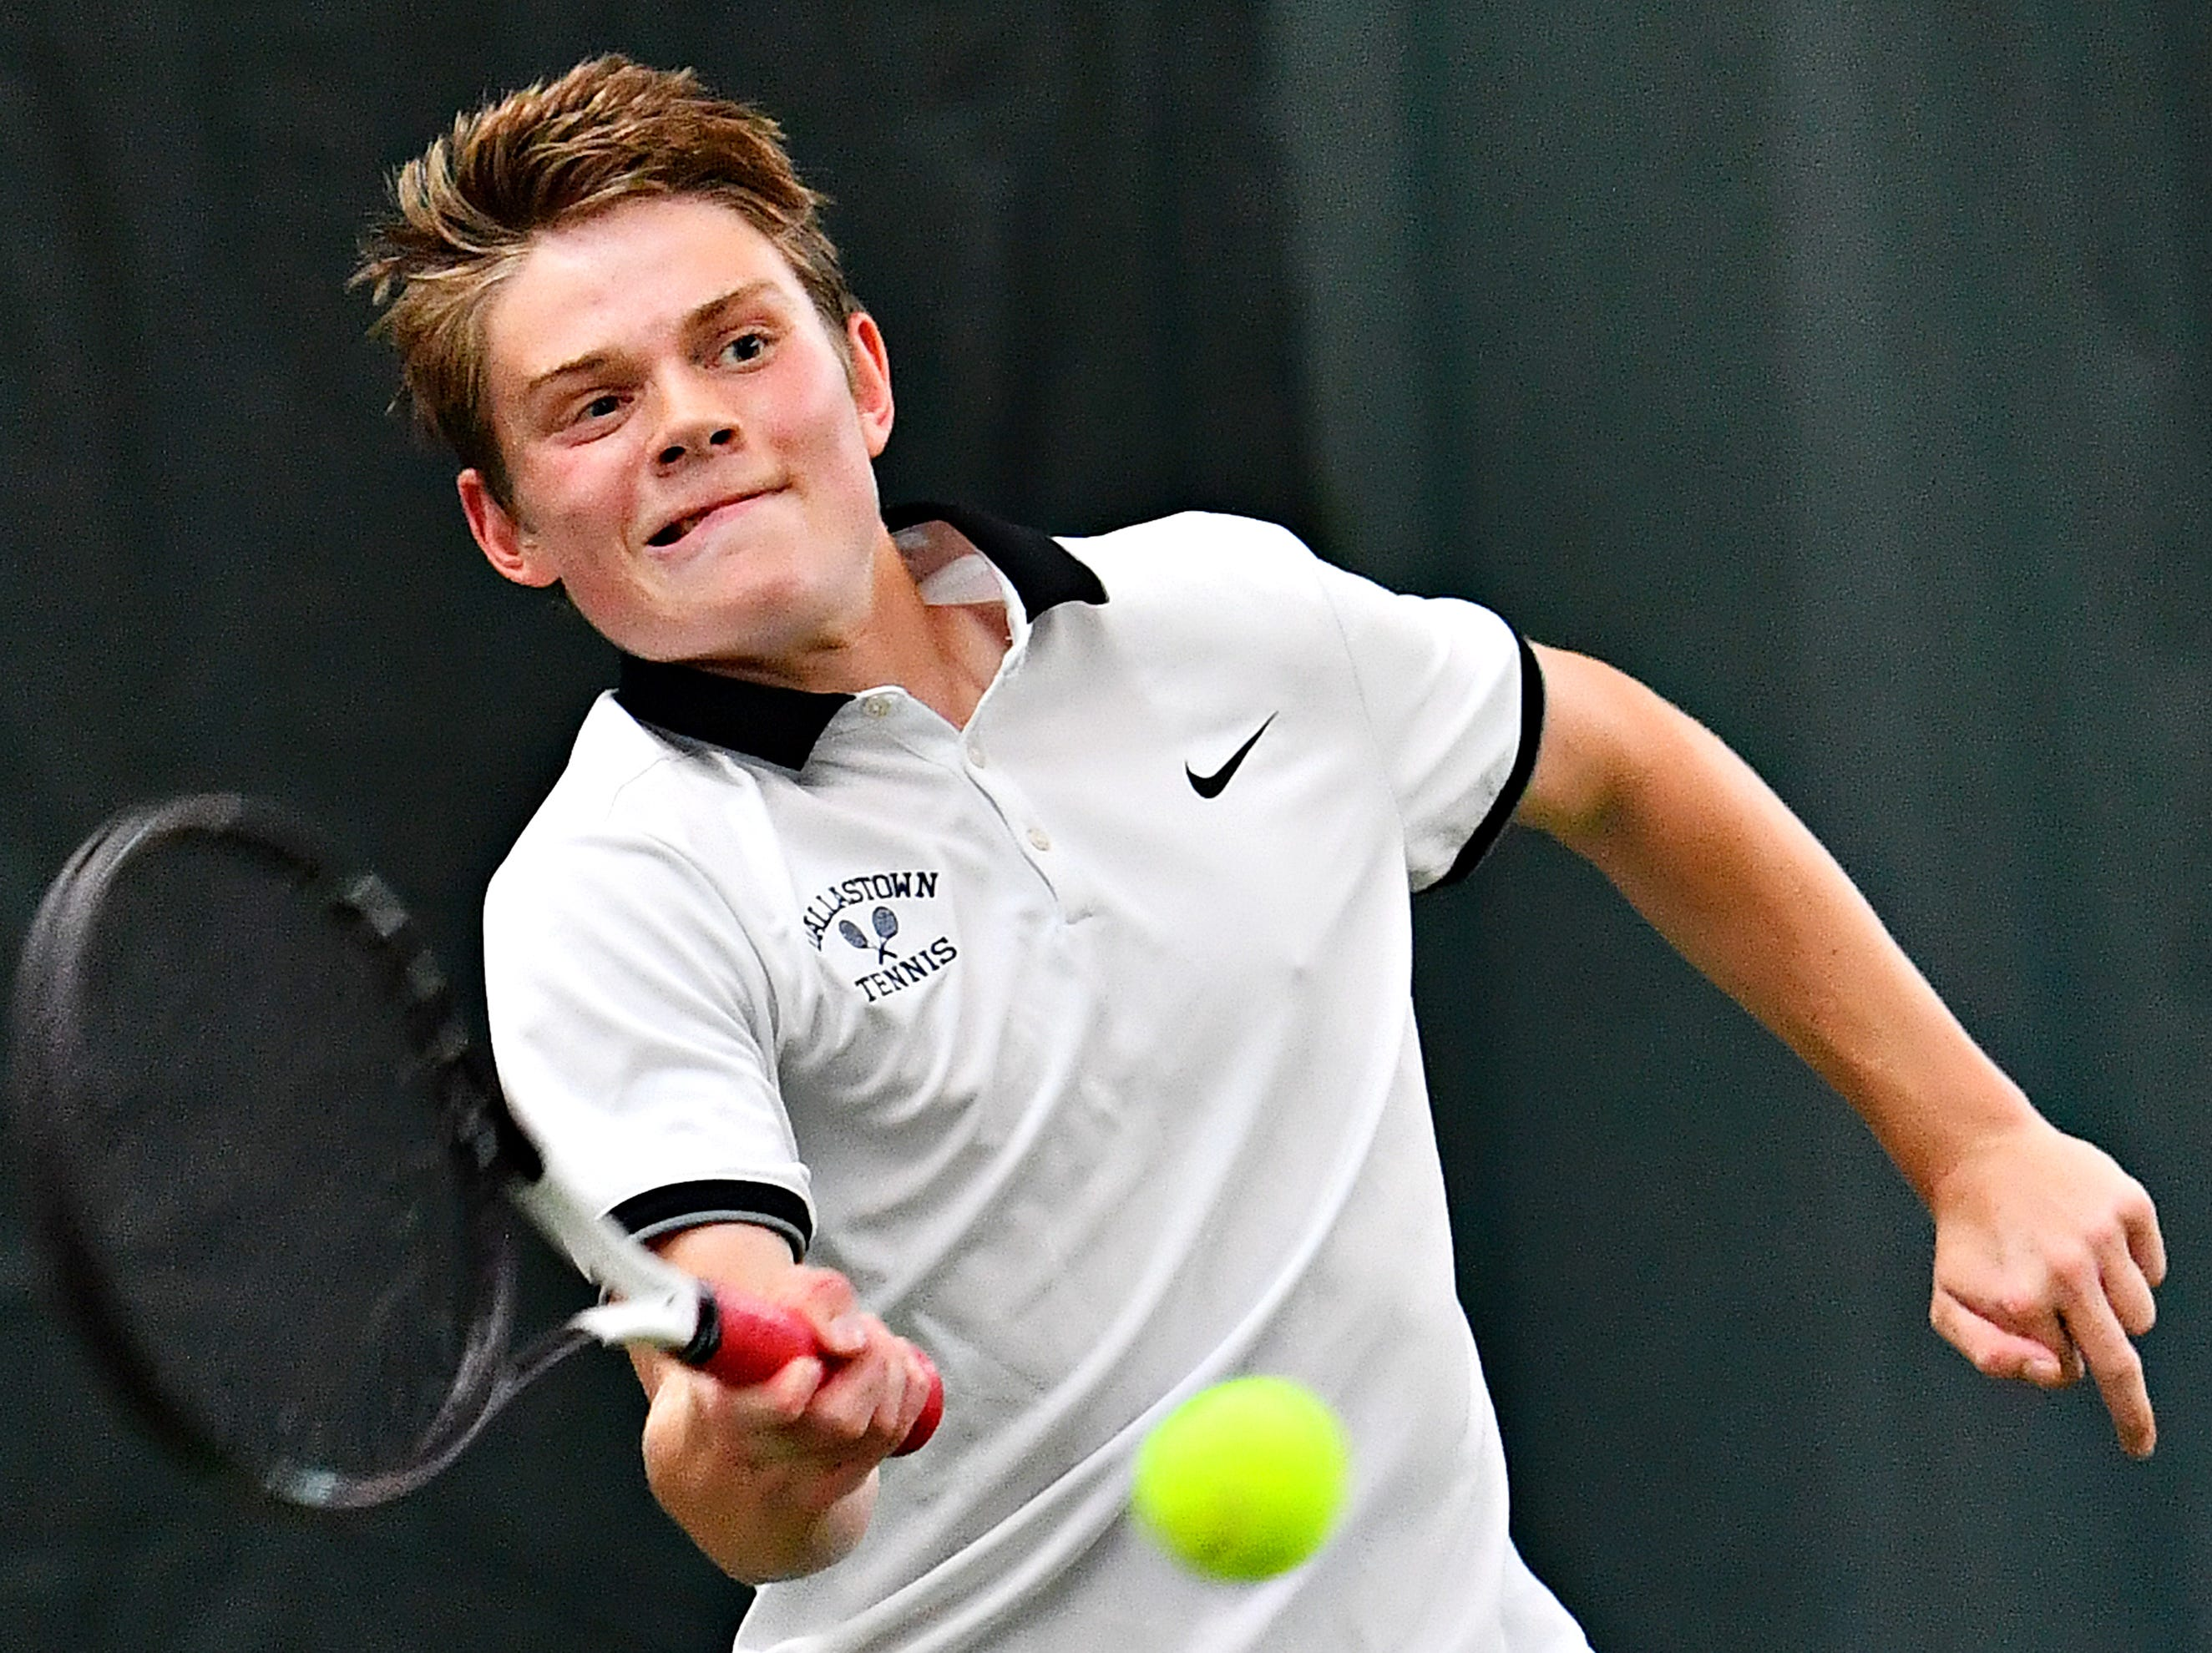 Dallastown's Jack Lynam returns the ball to Hershey during District III, Class 3-A boys' tennis team championship doubles action at Hershey Raquet Club in Hershey, Thursday, May 9, 2019. Dallastown would win the match, but Hershey would secure the title. Dawn J. Sagert photo